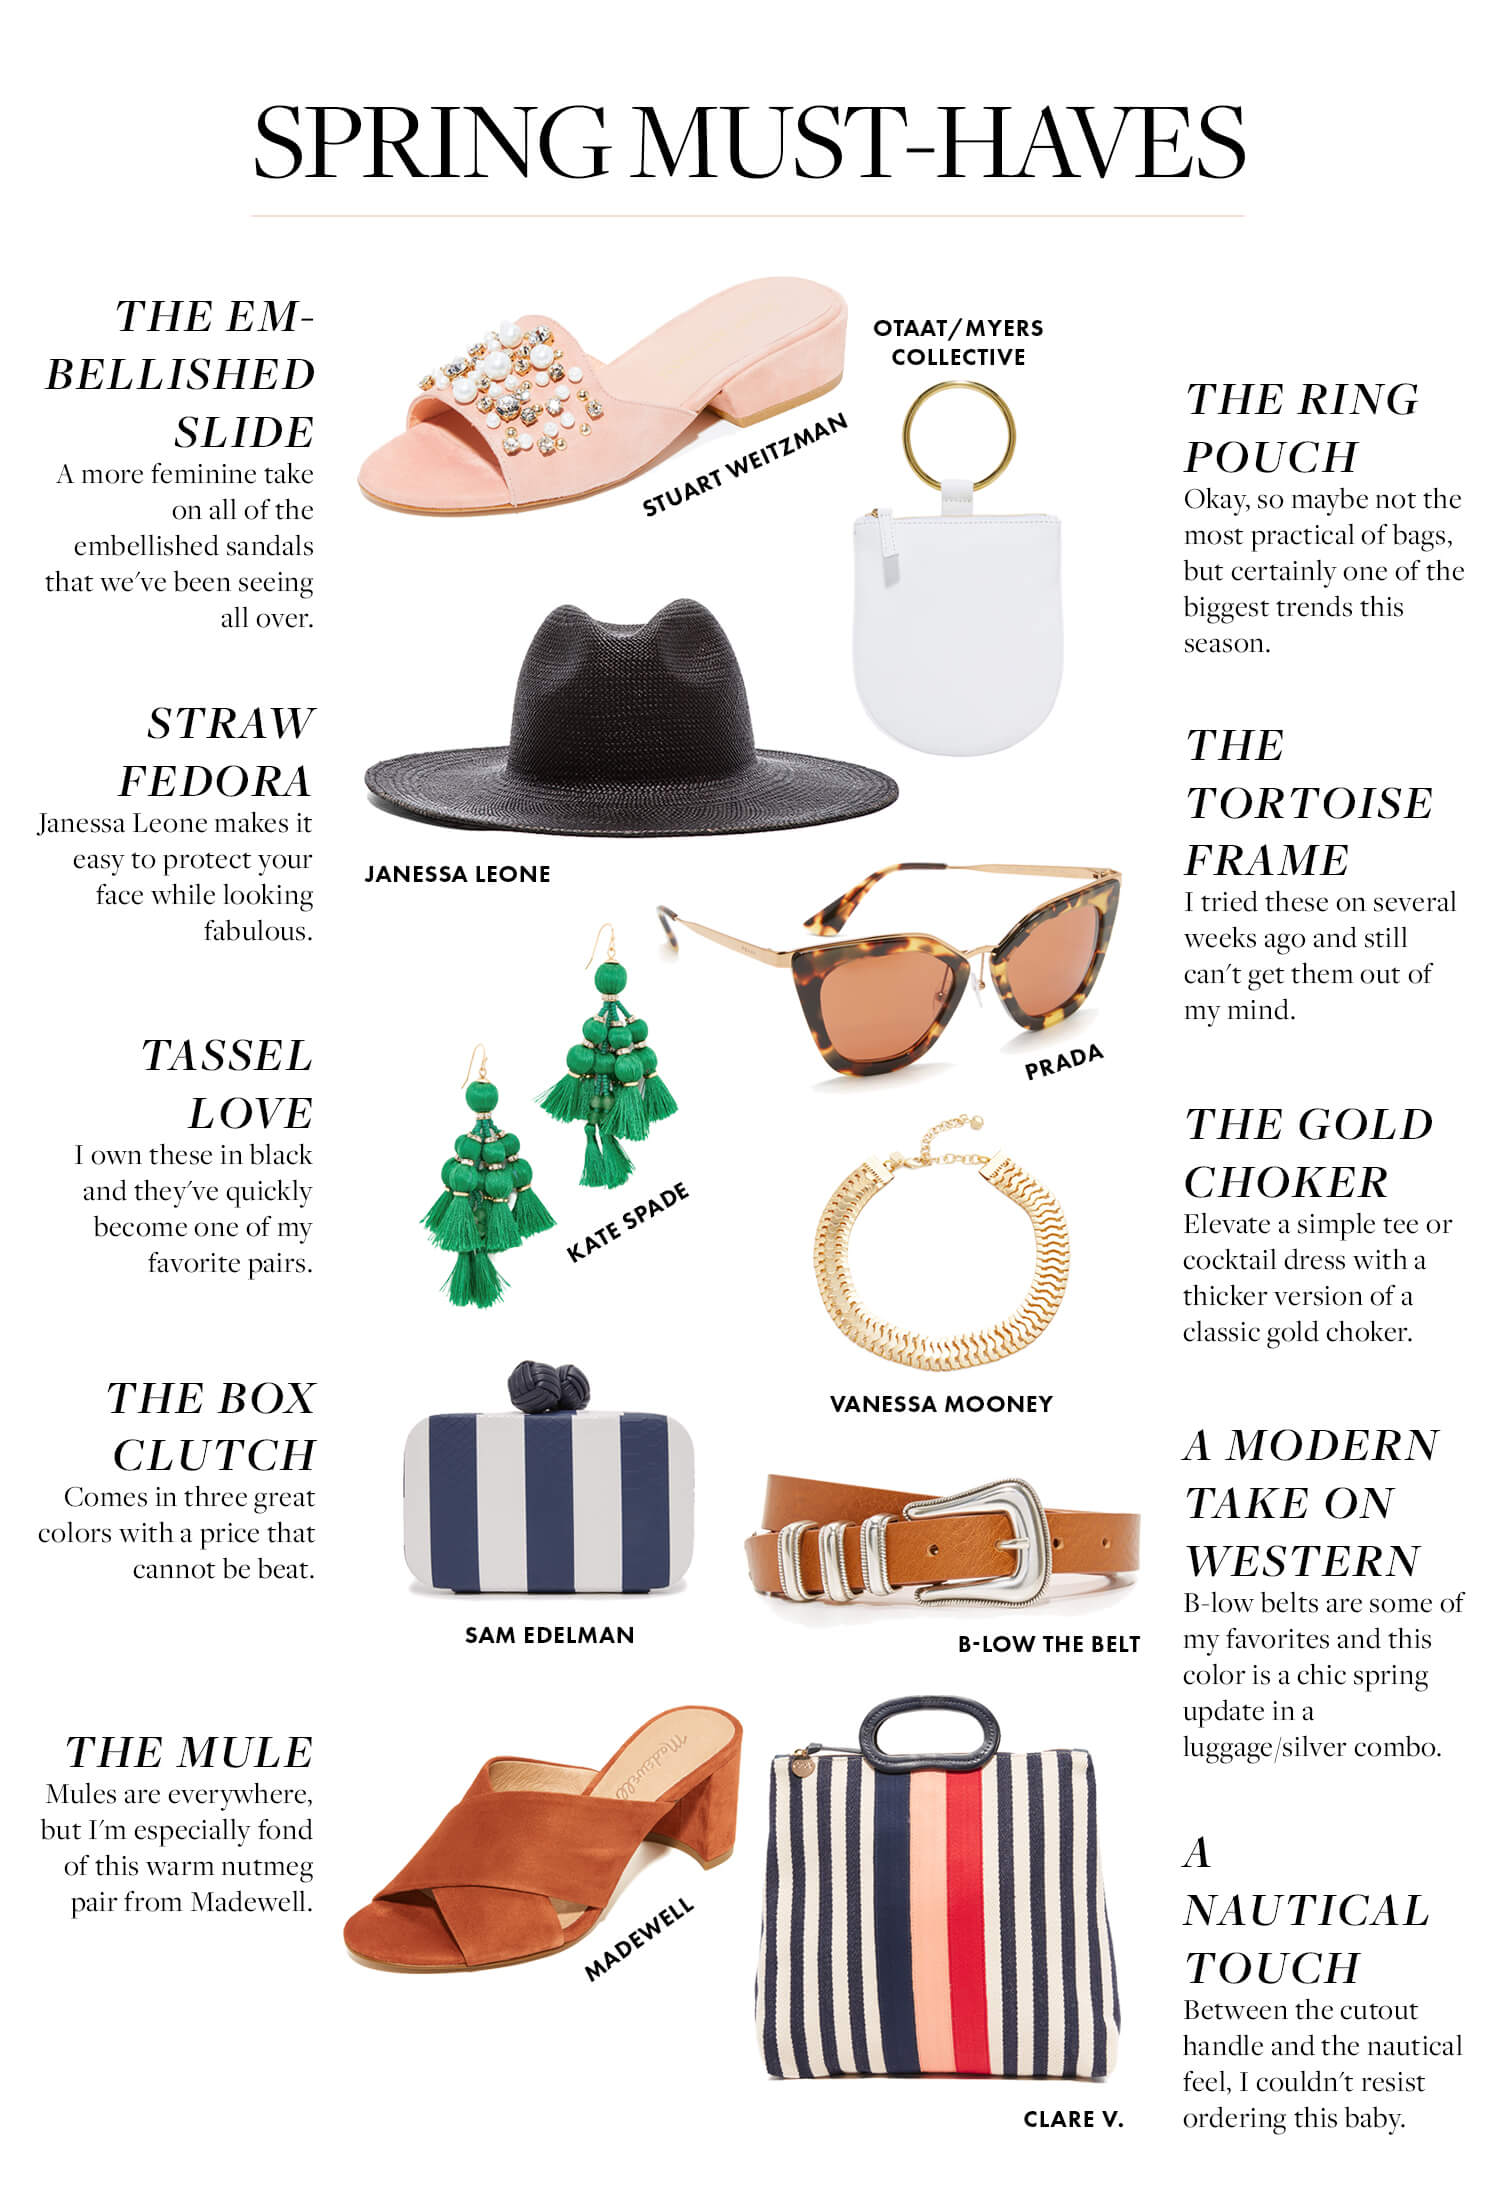 Spring Must Have Items: Spring Must-Haves